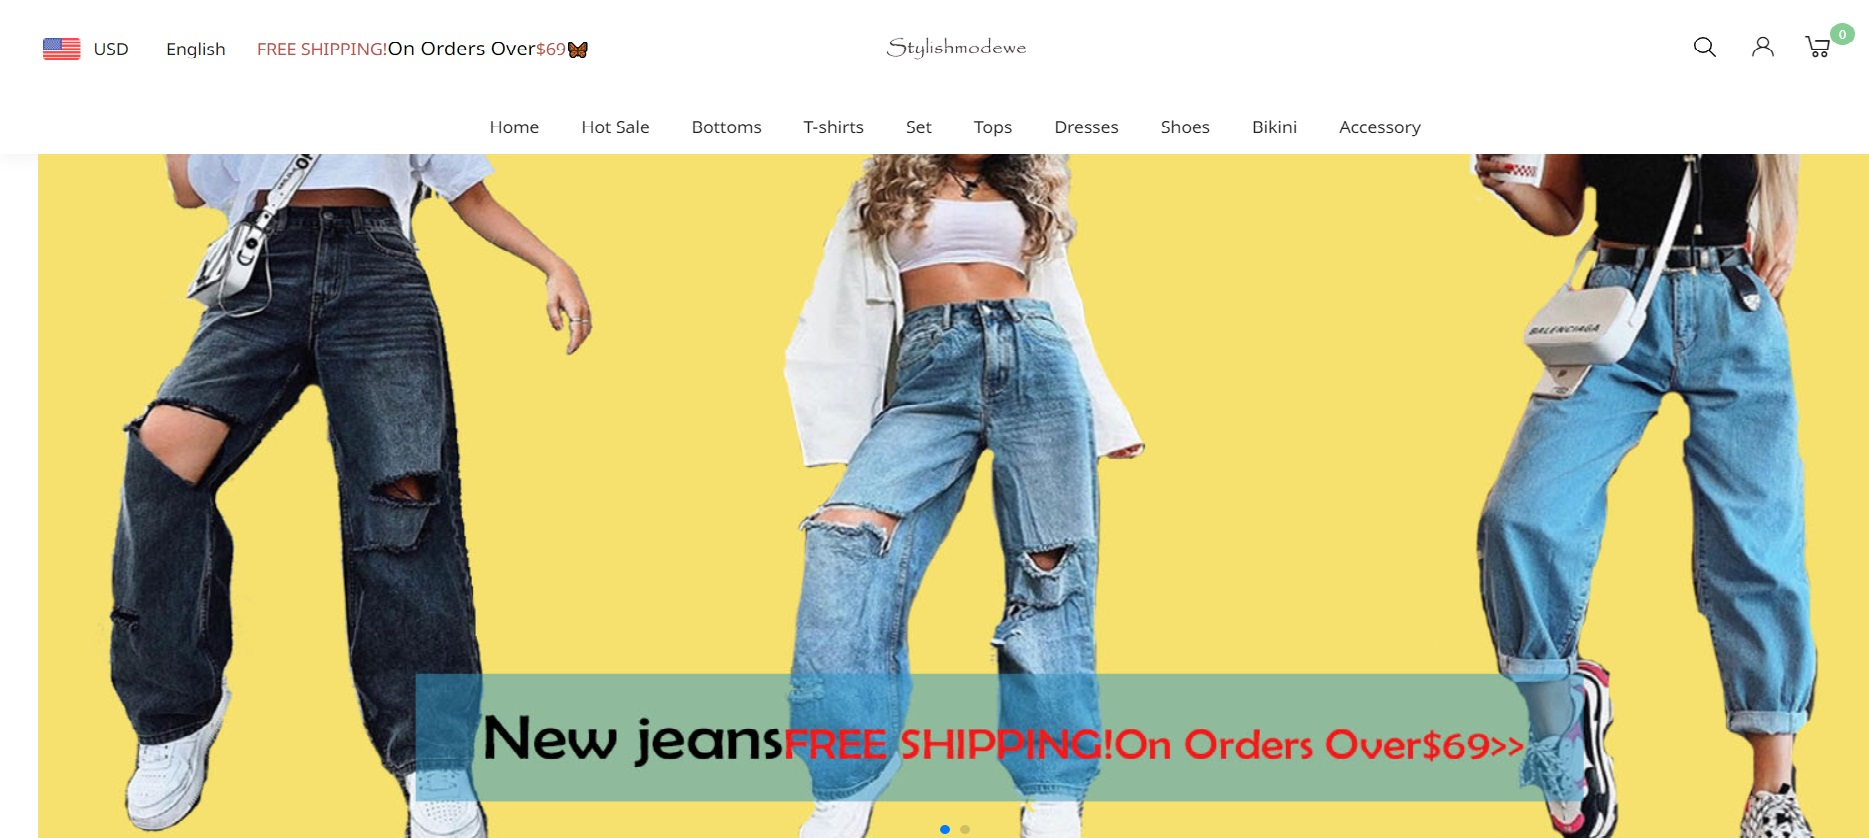 Is Stylishmodewe.com a Scam? See the Review of the Online Store